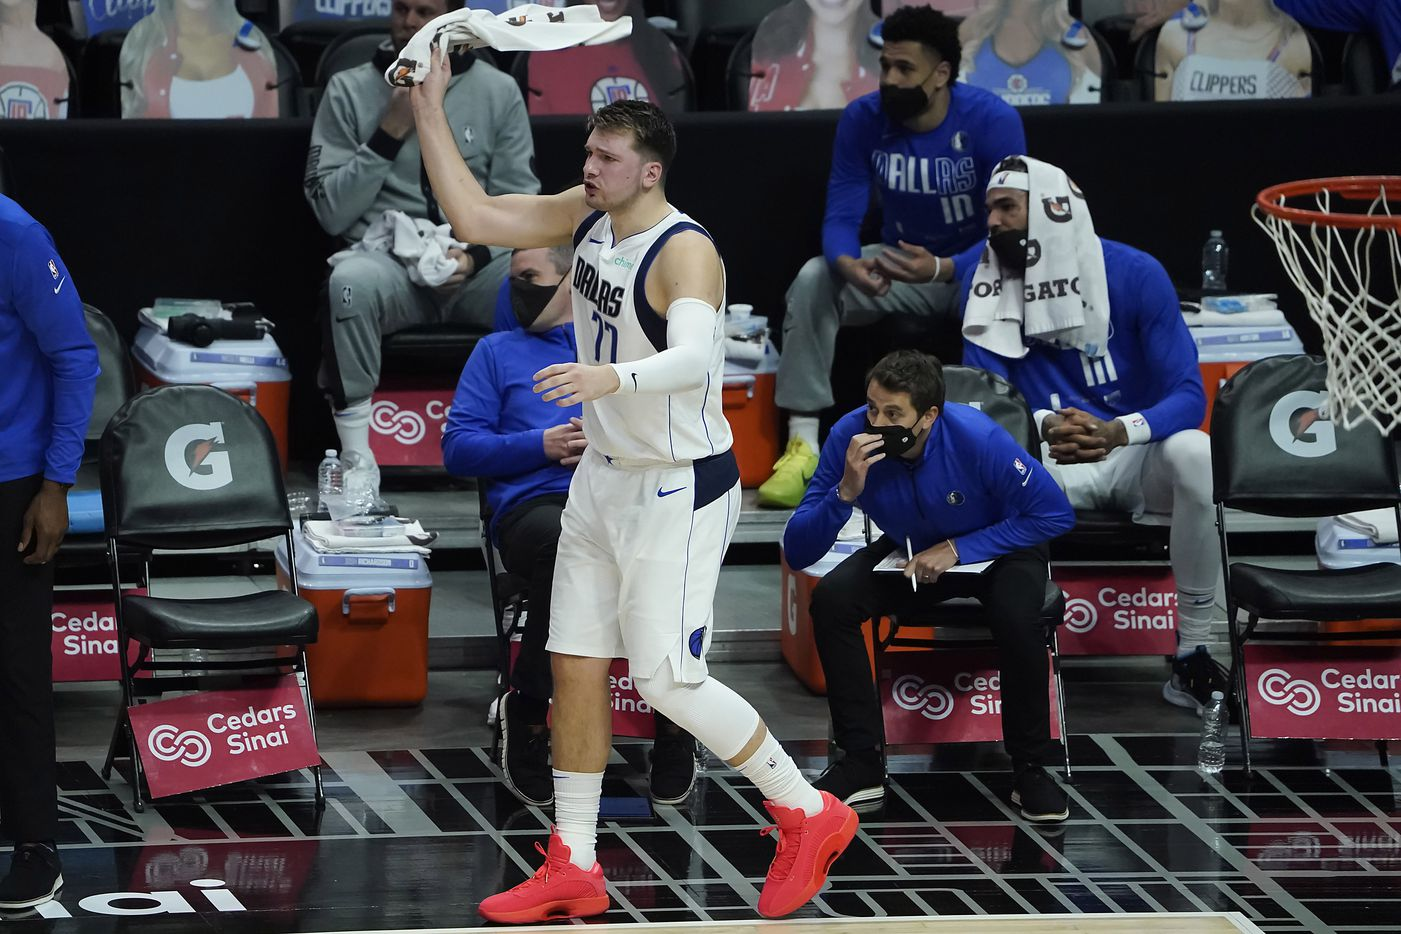 Dallas Mavericks guard Luka Doncic (77) cheers from the bench during the first half of an NBA playoff basketball game against the LA Clippers at Staples Center on Tuesday, May 25, 2021, in Los Angeles.